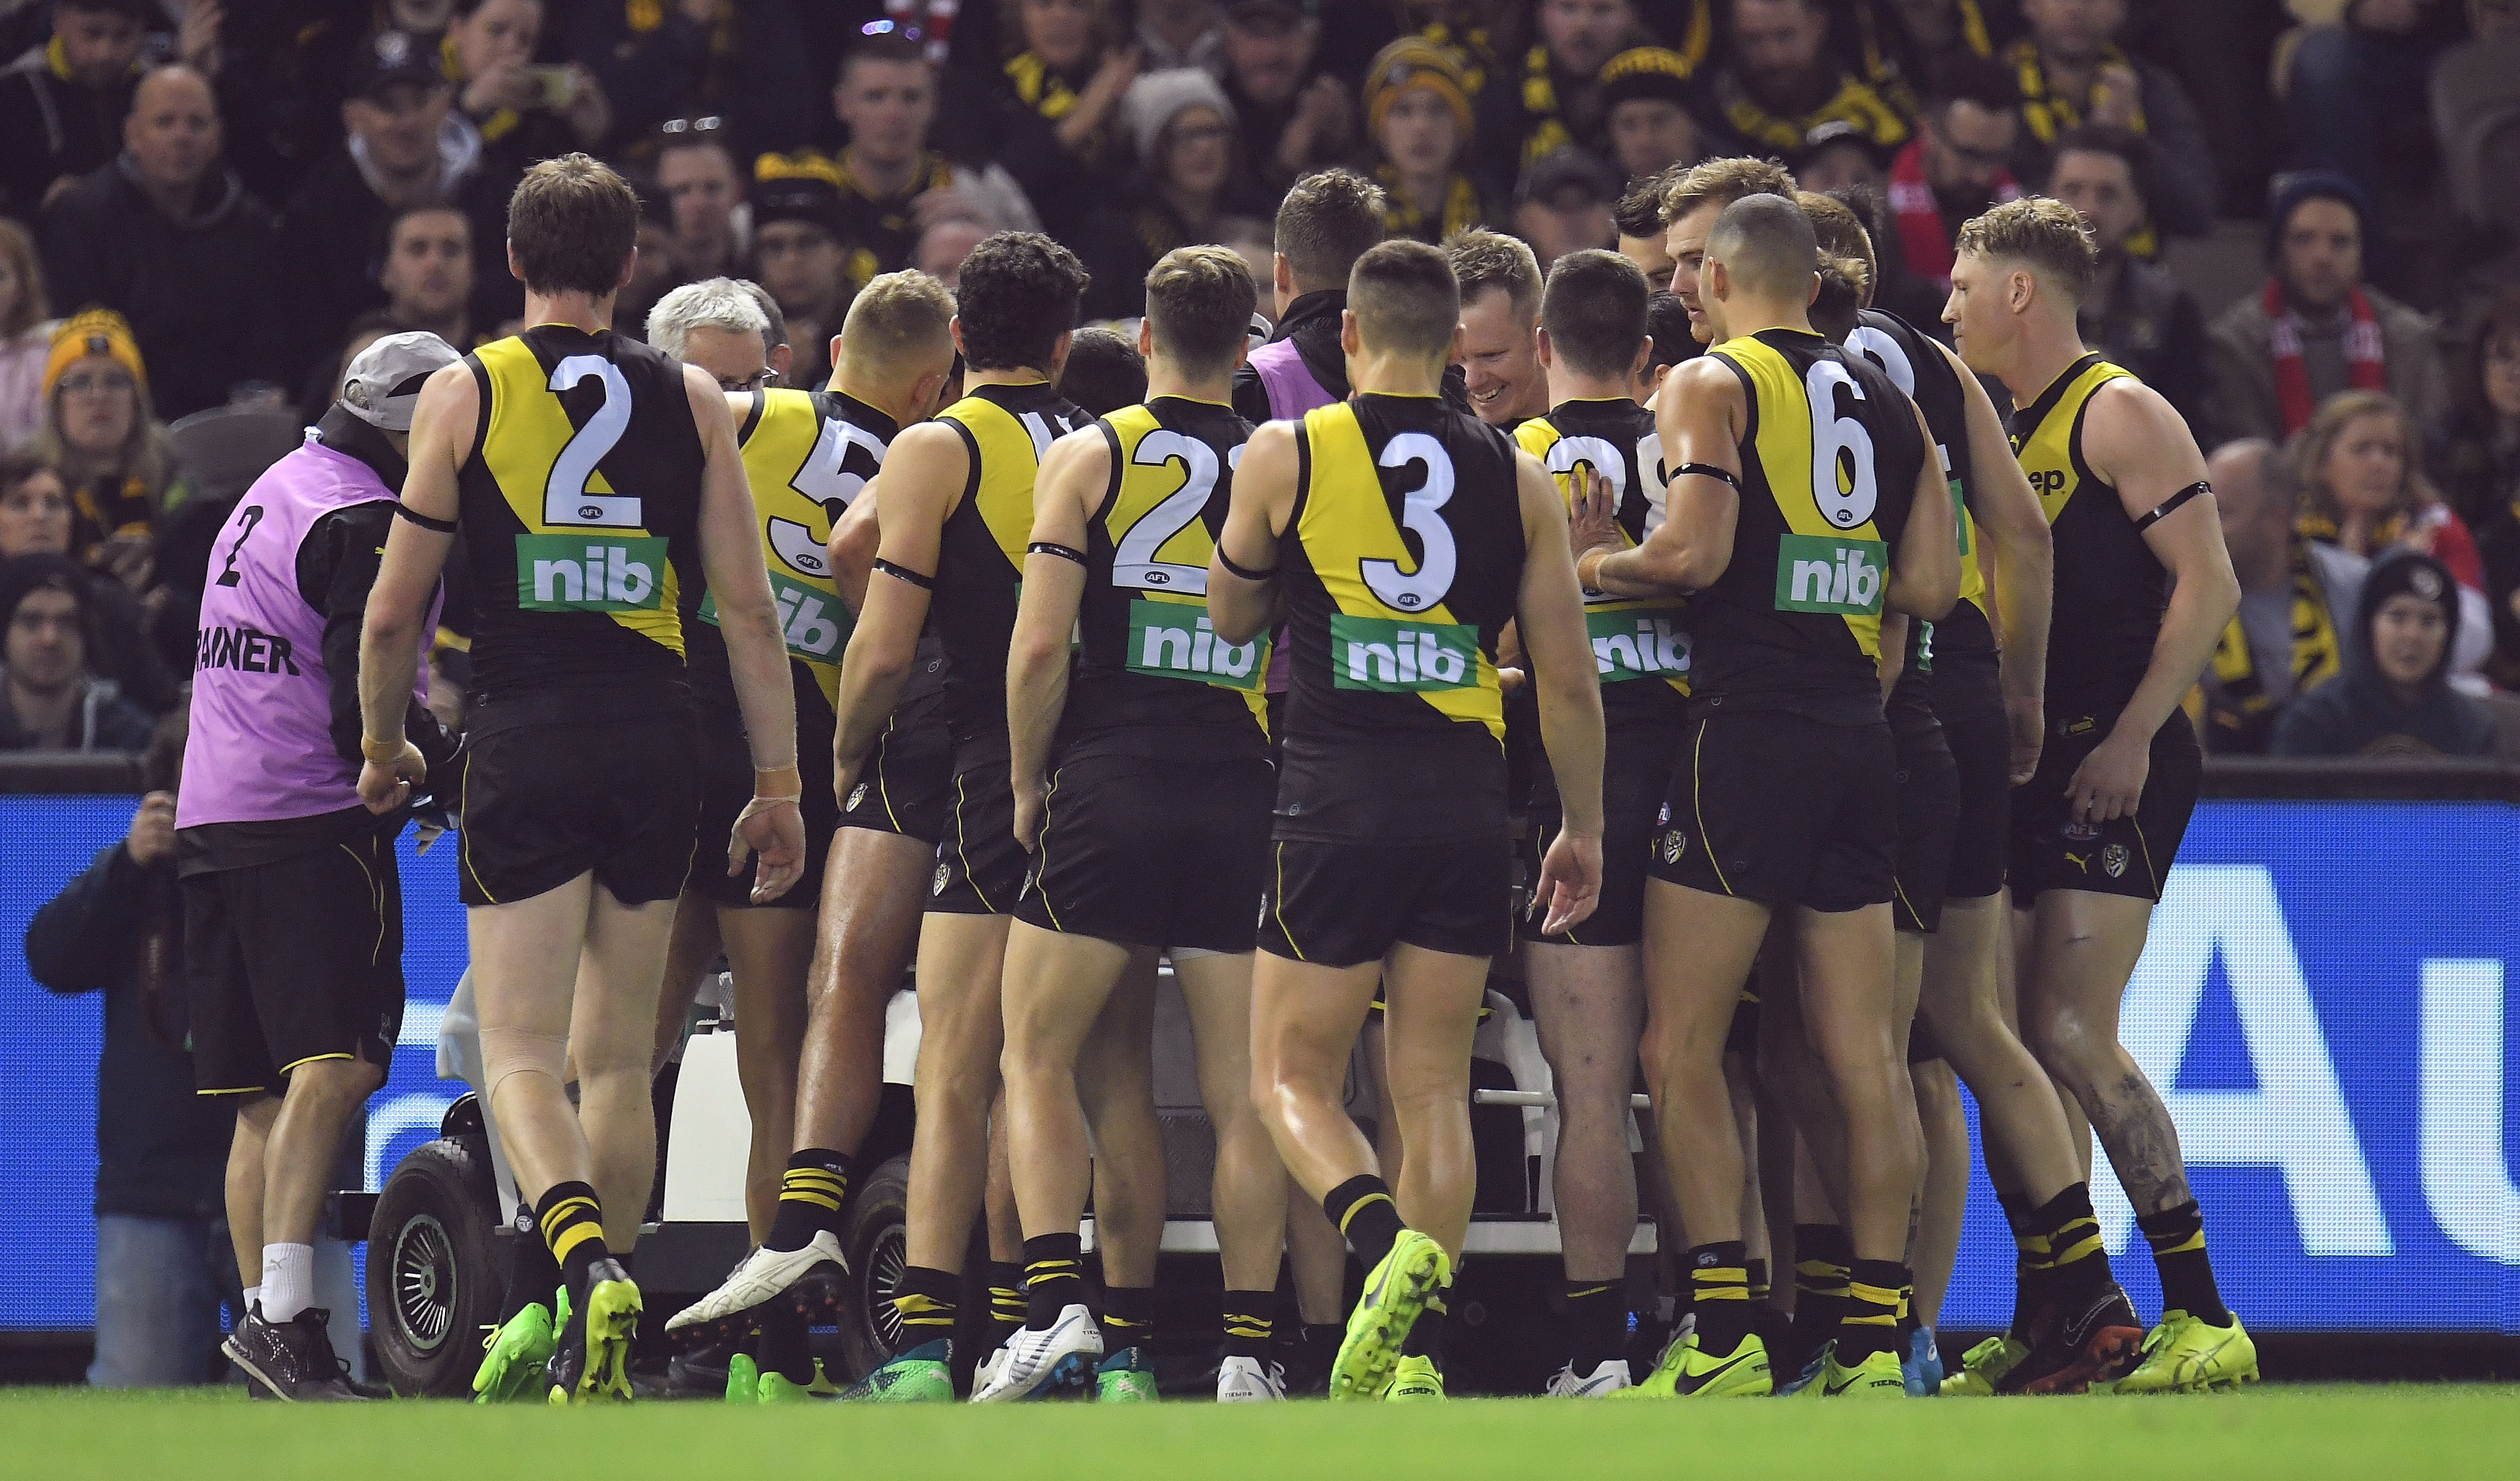 Article image for Tigers triumph: Moving scenes as Richmond rally around injured mate Conca